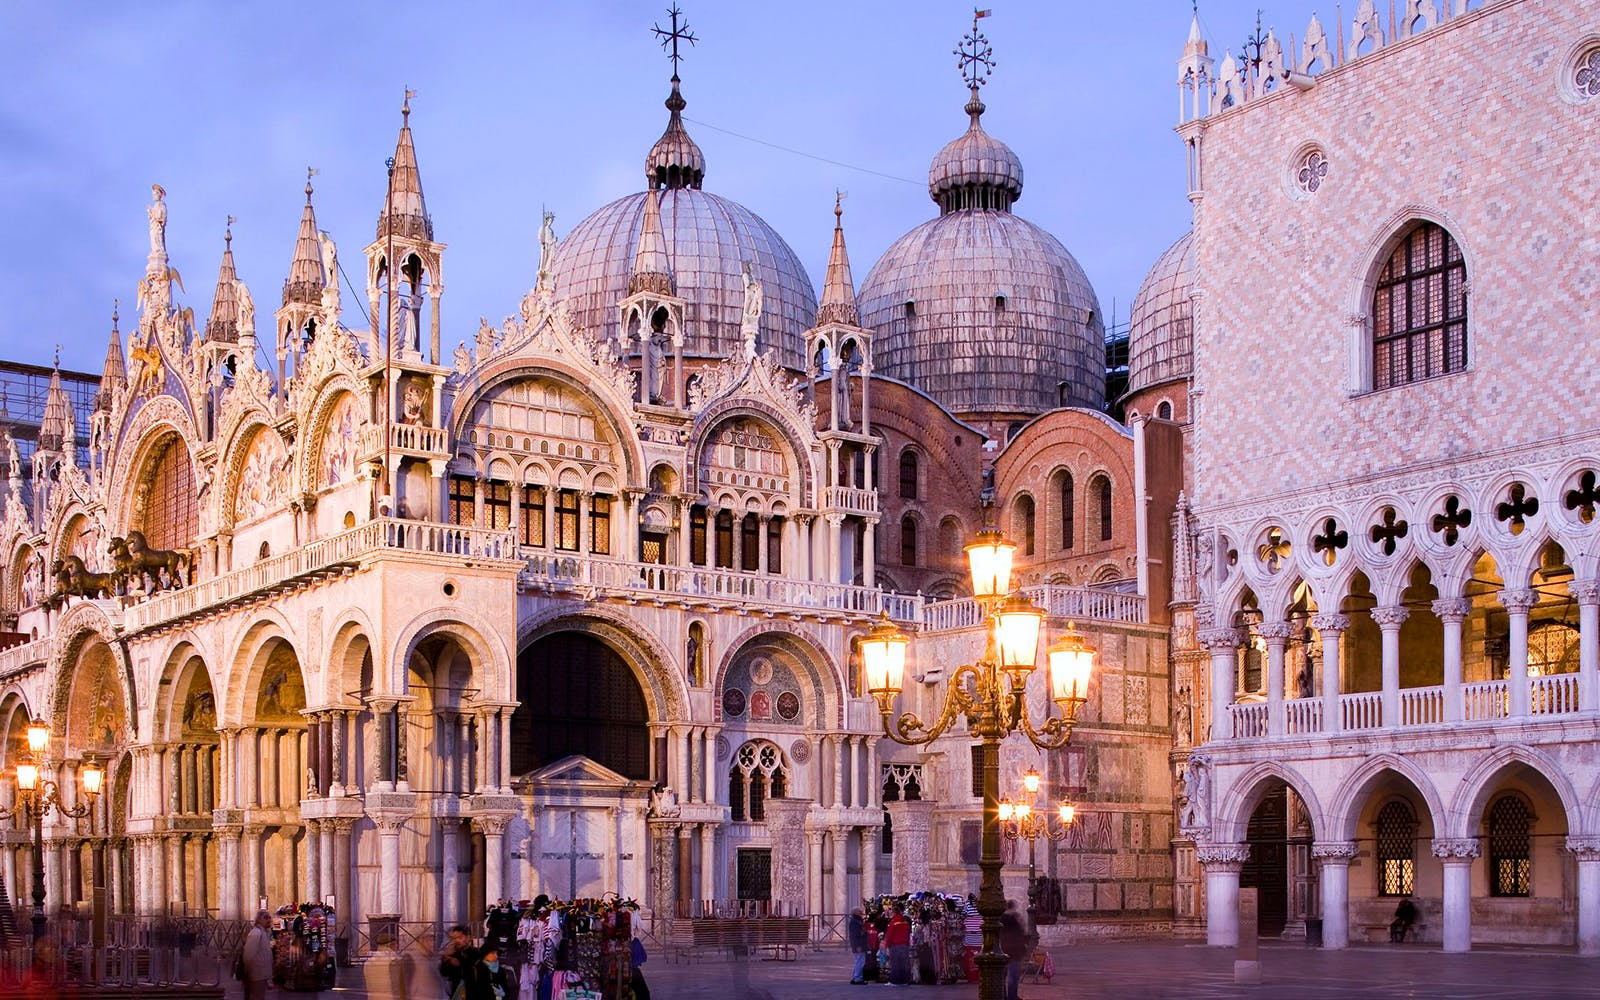 Skip The Line: Guided Tour of St. Mark's Basilica & Doge's Palace + The Royal Palaces